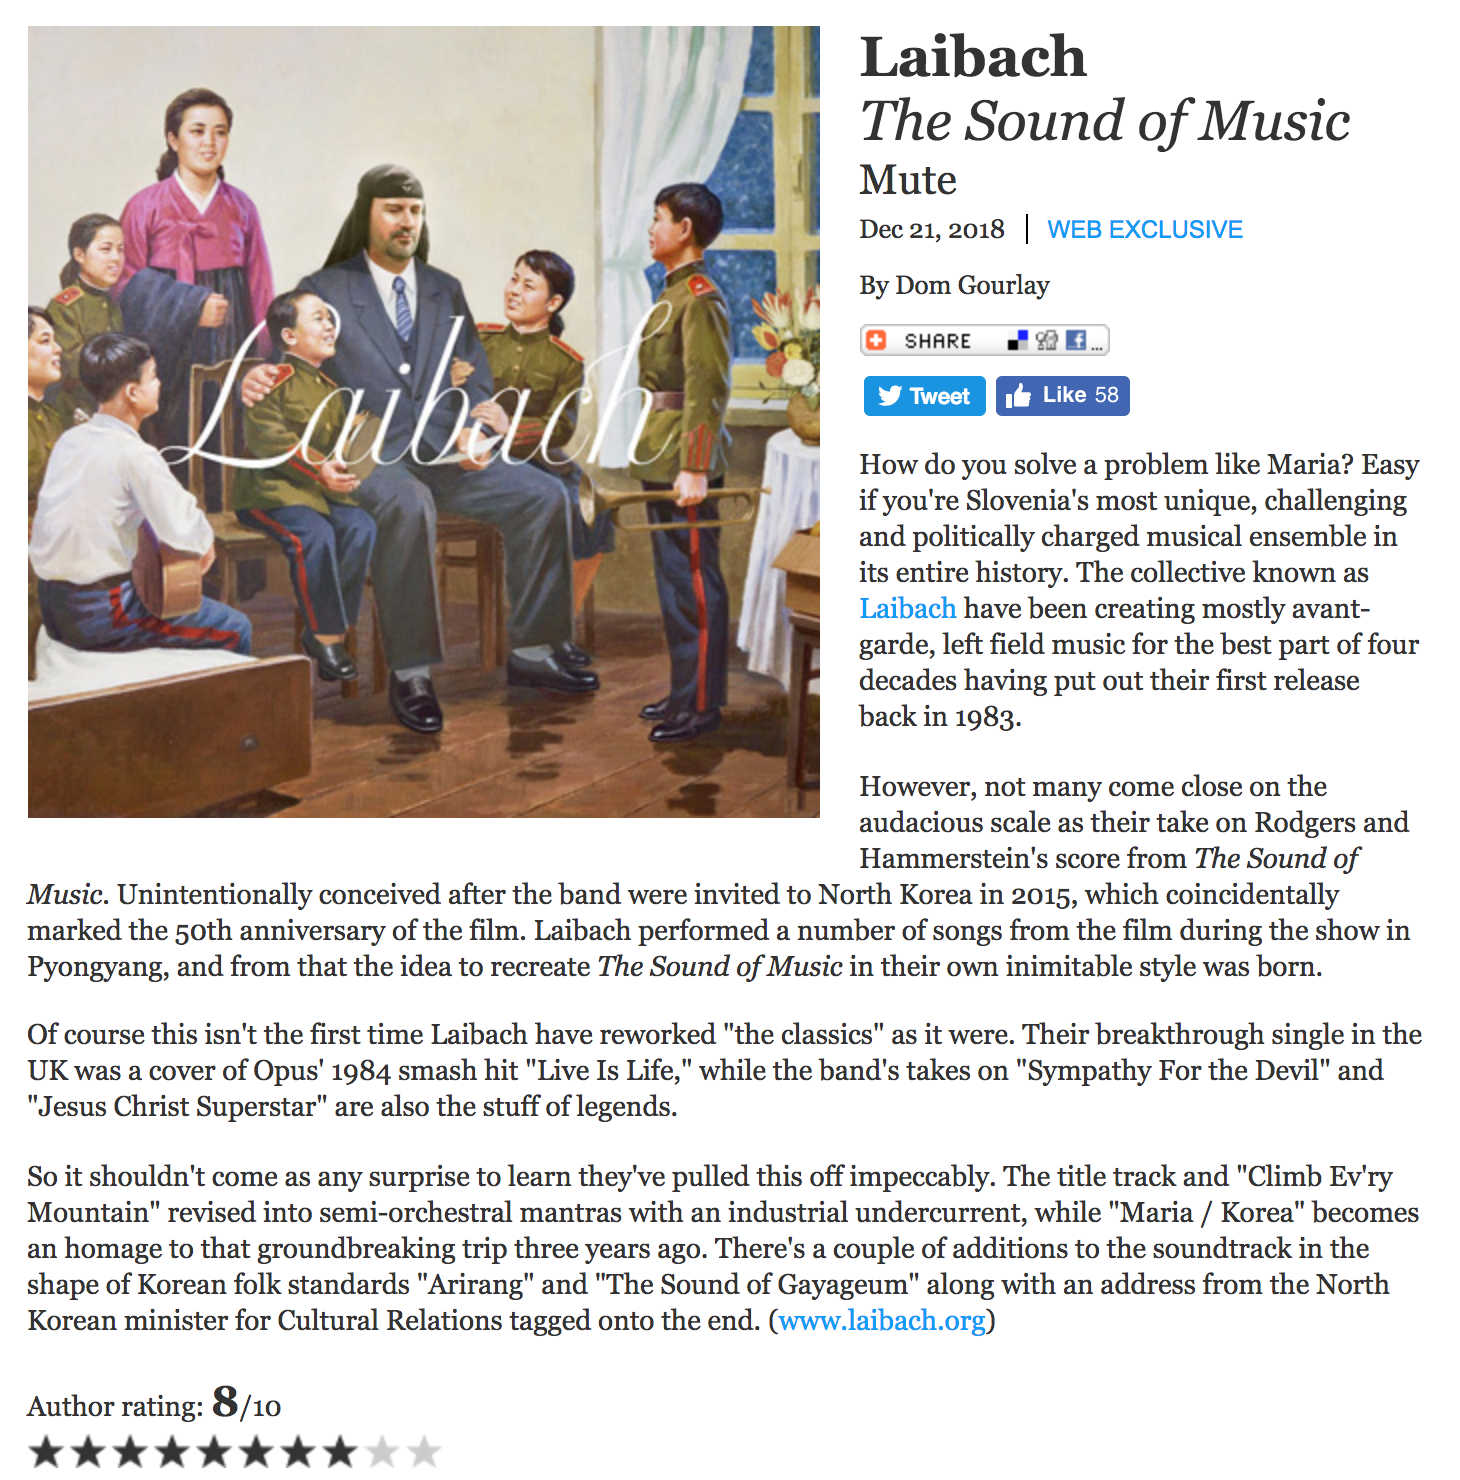 The Sound Of Music ‹ Laibach